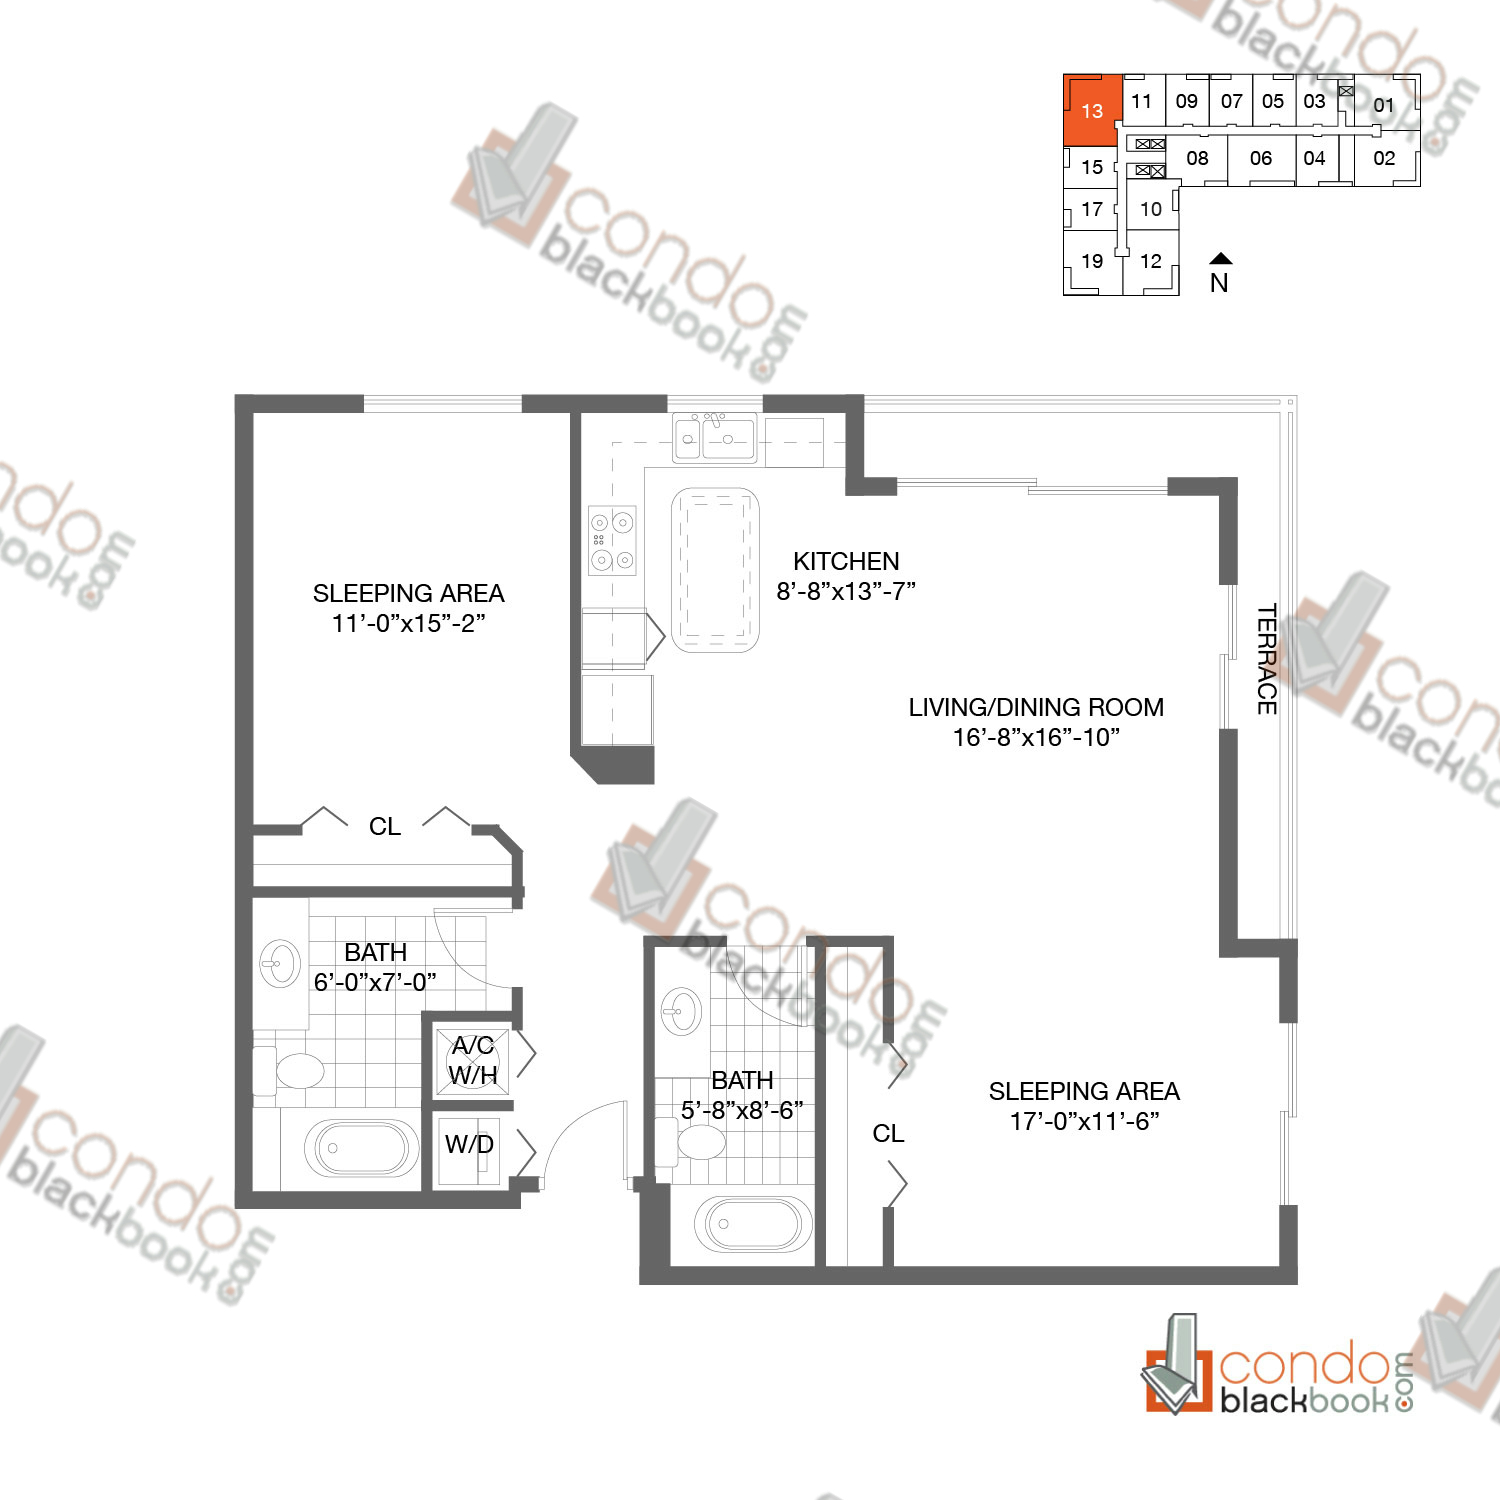 Floor plan for Loft Downtown II Downtown Miami Miami, model B3, line 13,  2/2 bedrooms, 1153 sq ft